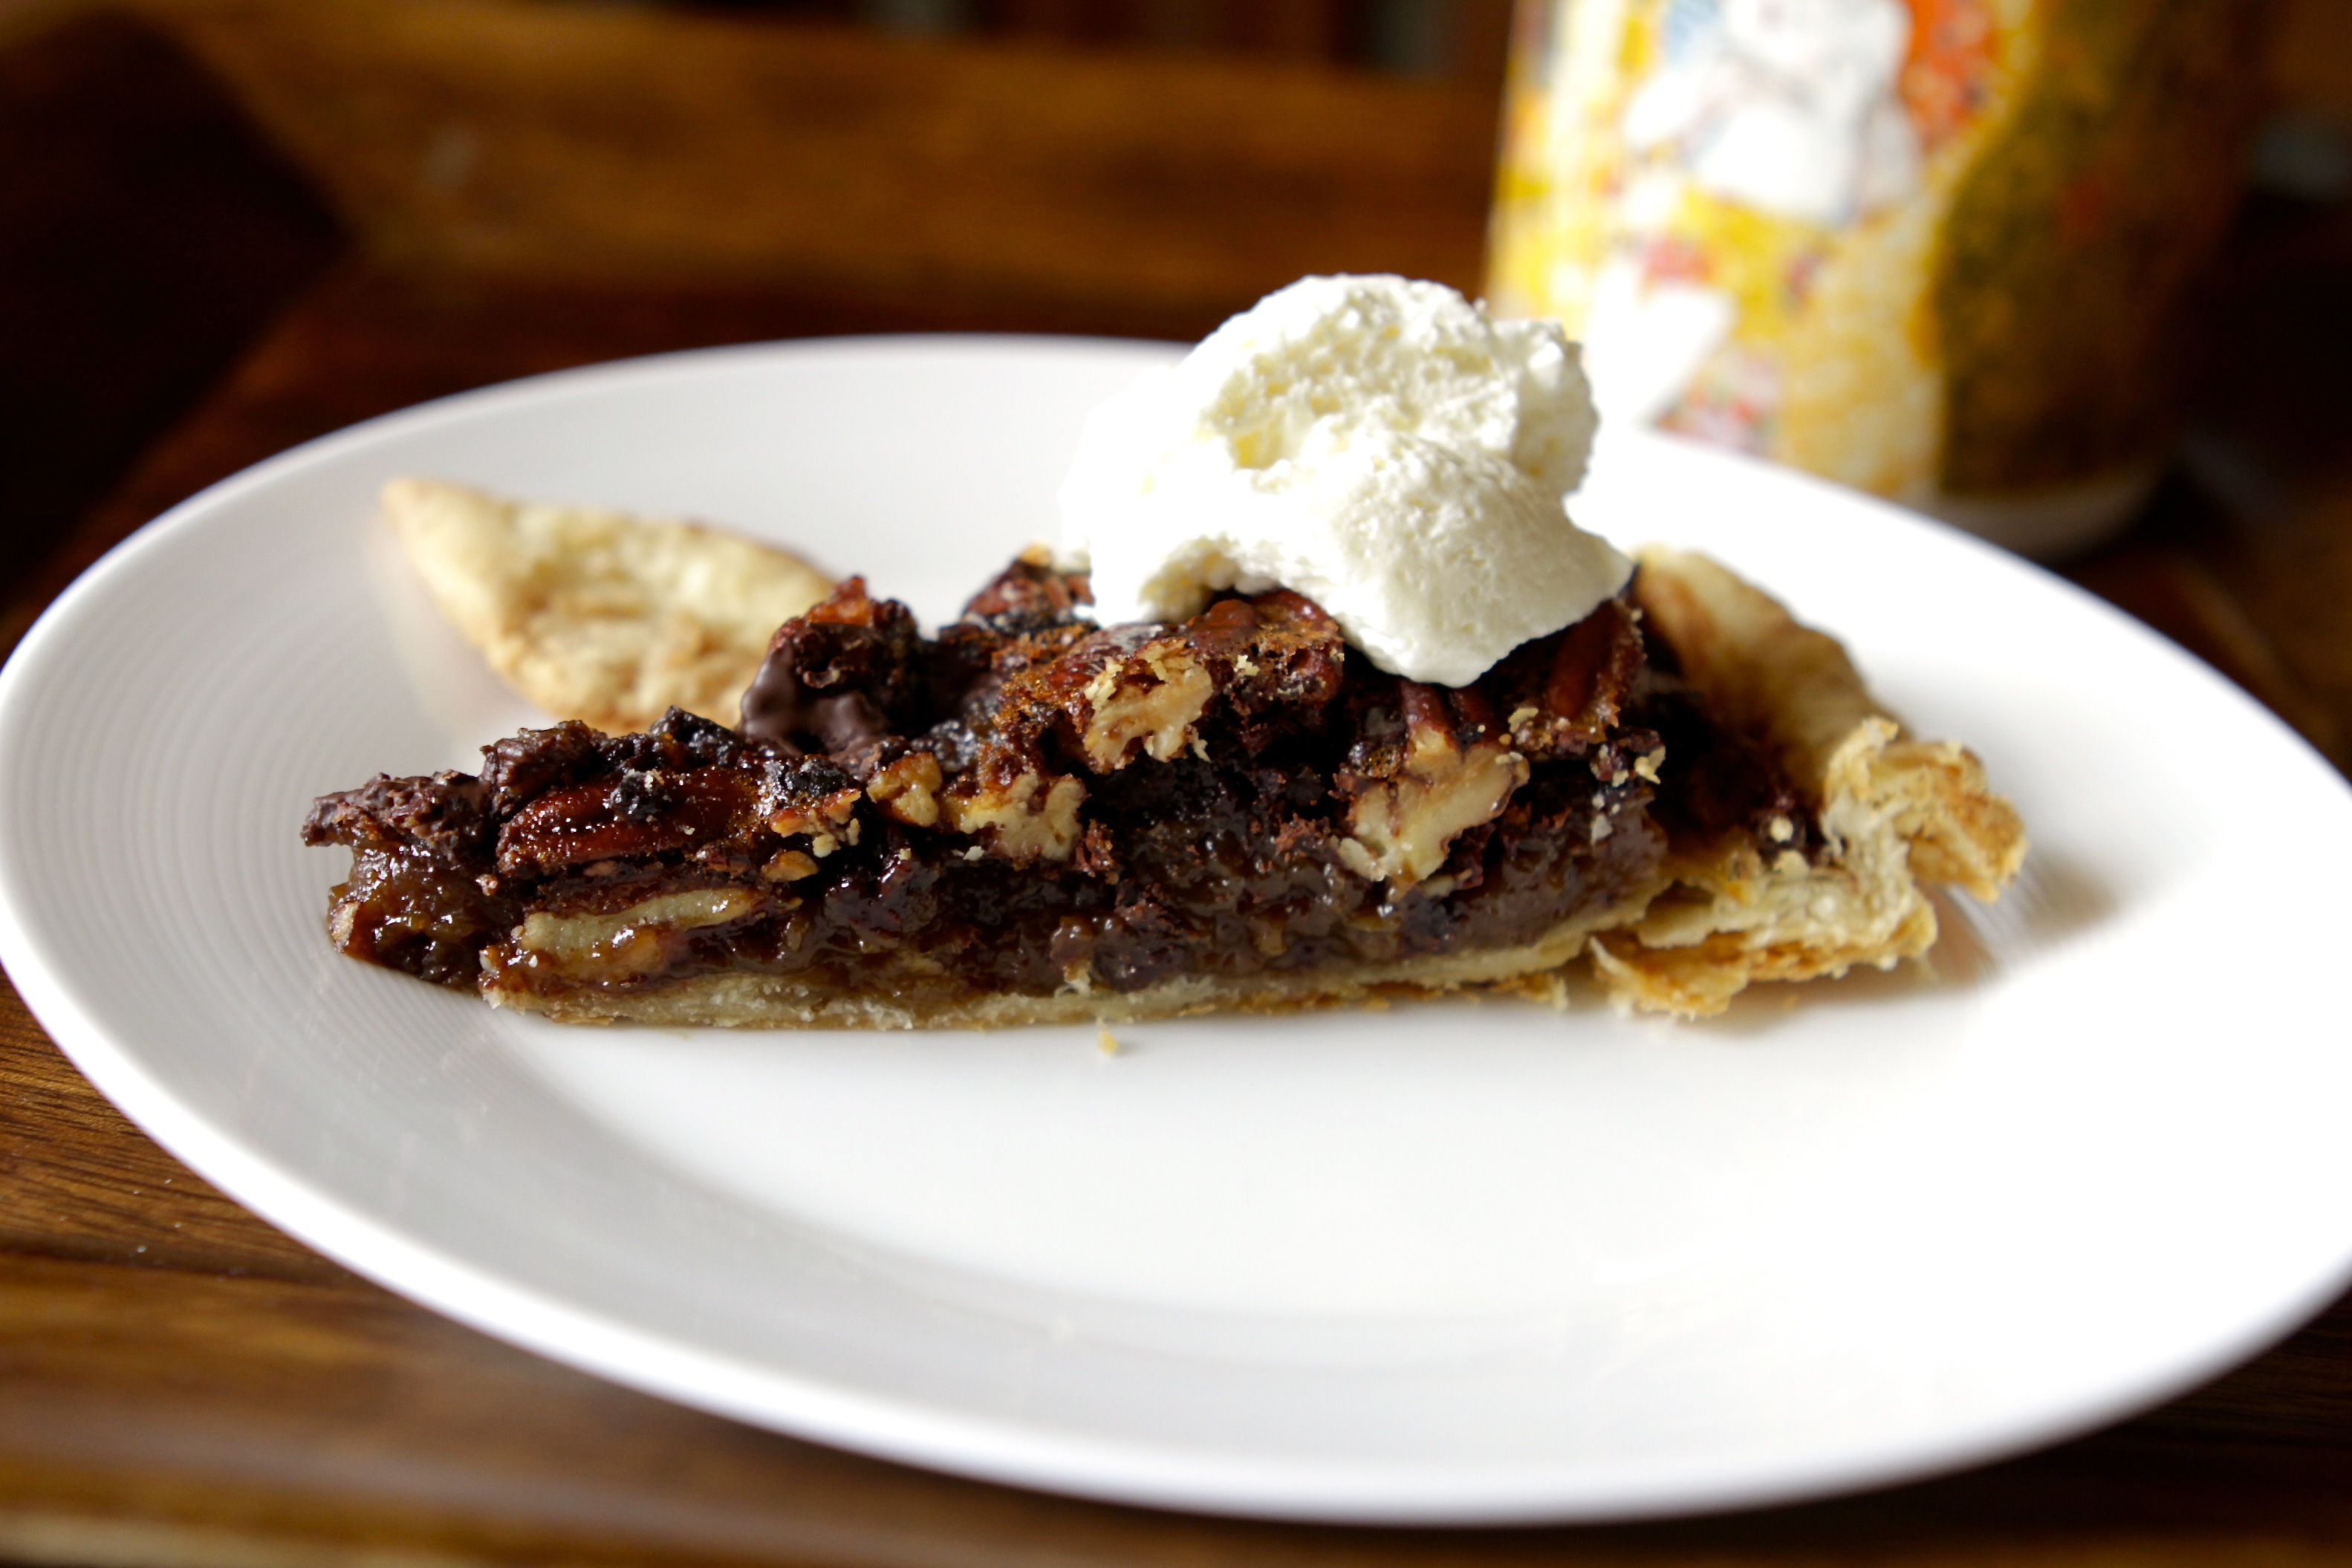 Chocolate Espresso Pecan Pie - Baby Bird's Farm and Cocina